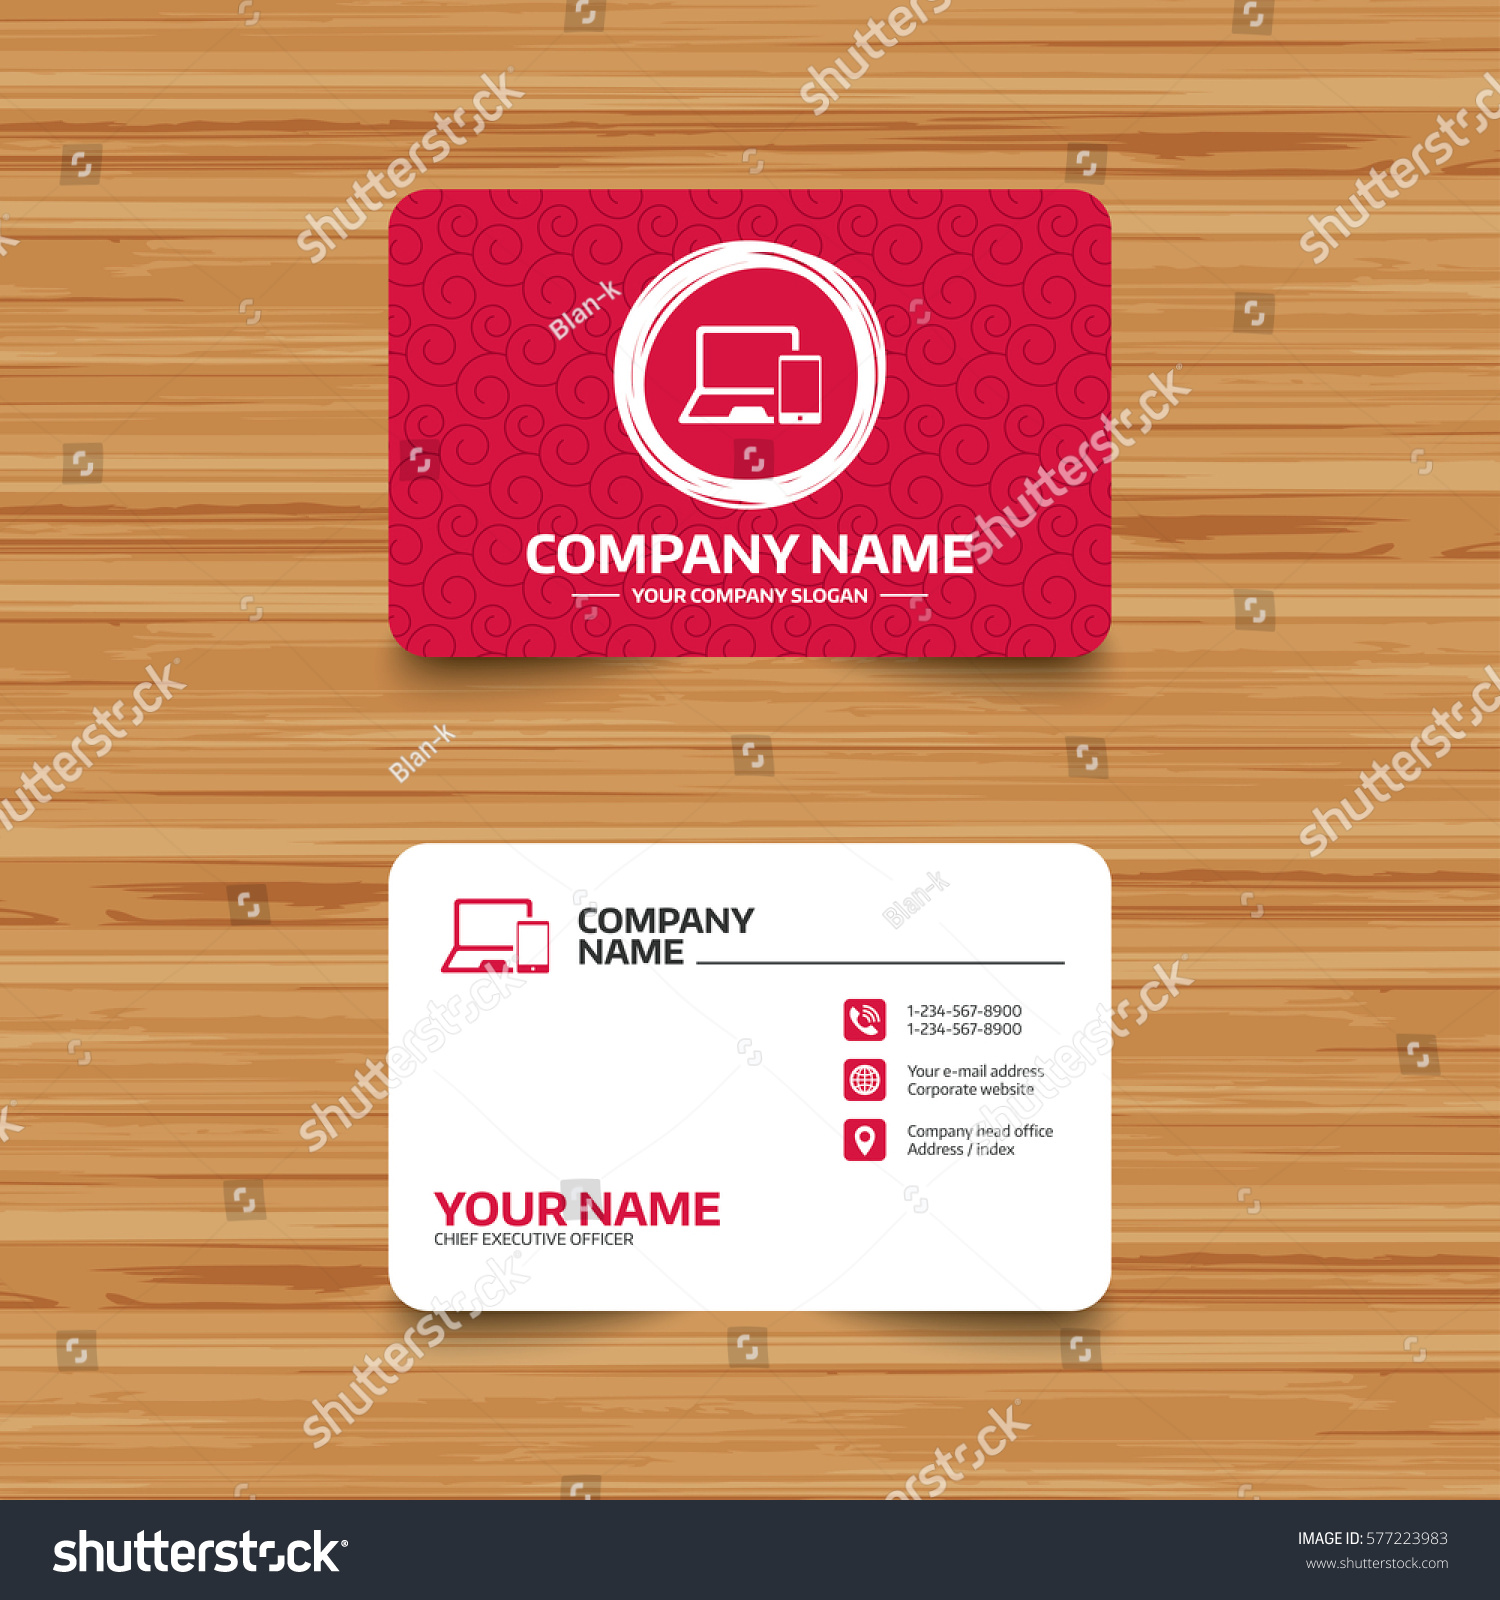 Business Card Template Texture Mobile Devices Stock Illustration ...